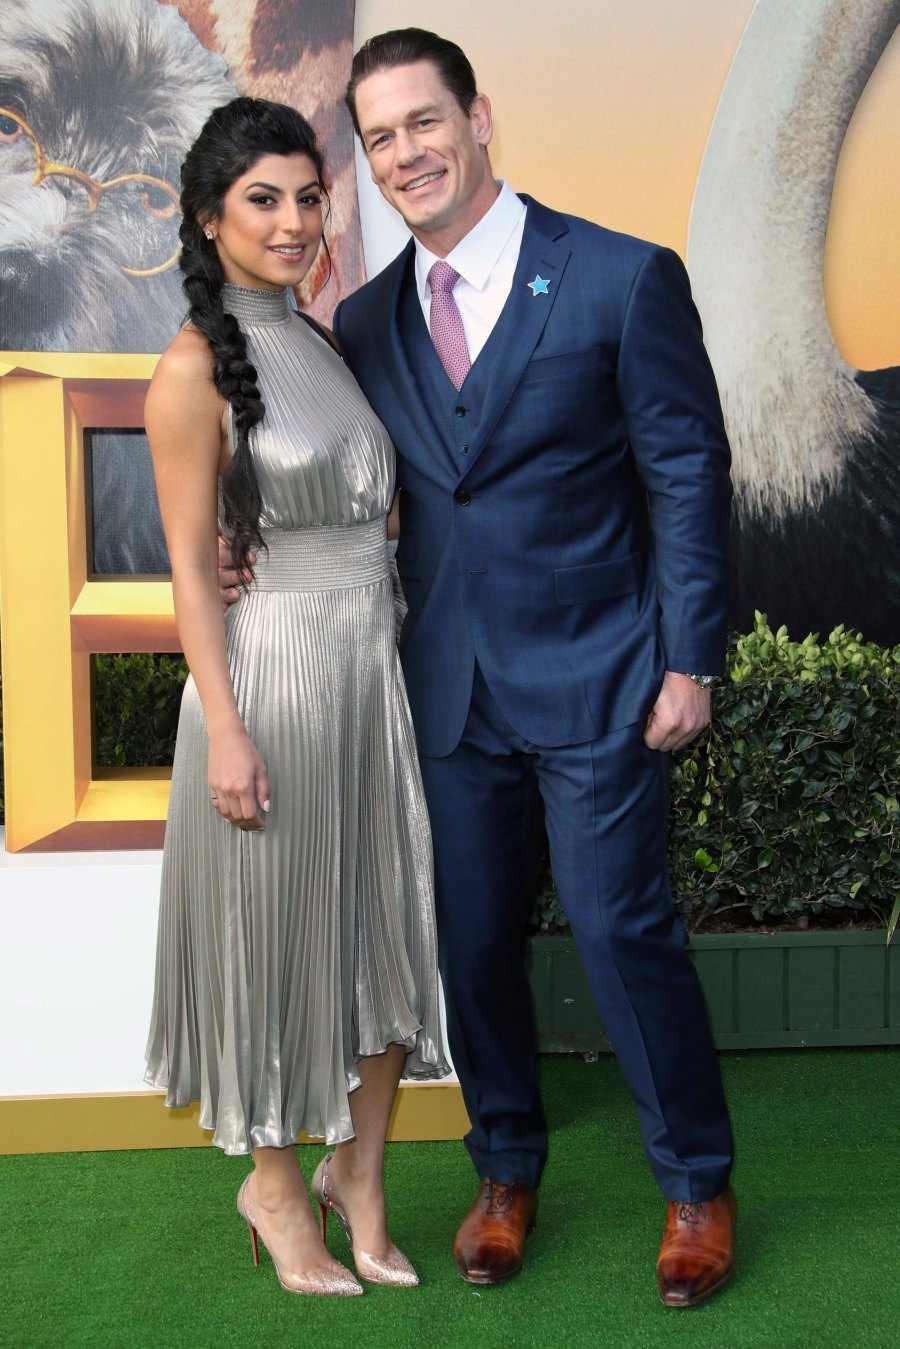 John Cena and His Girlfriend Shay Shariatzadeh Pack on the PDA at 'Doolittle' Film Premiere